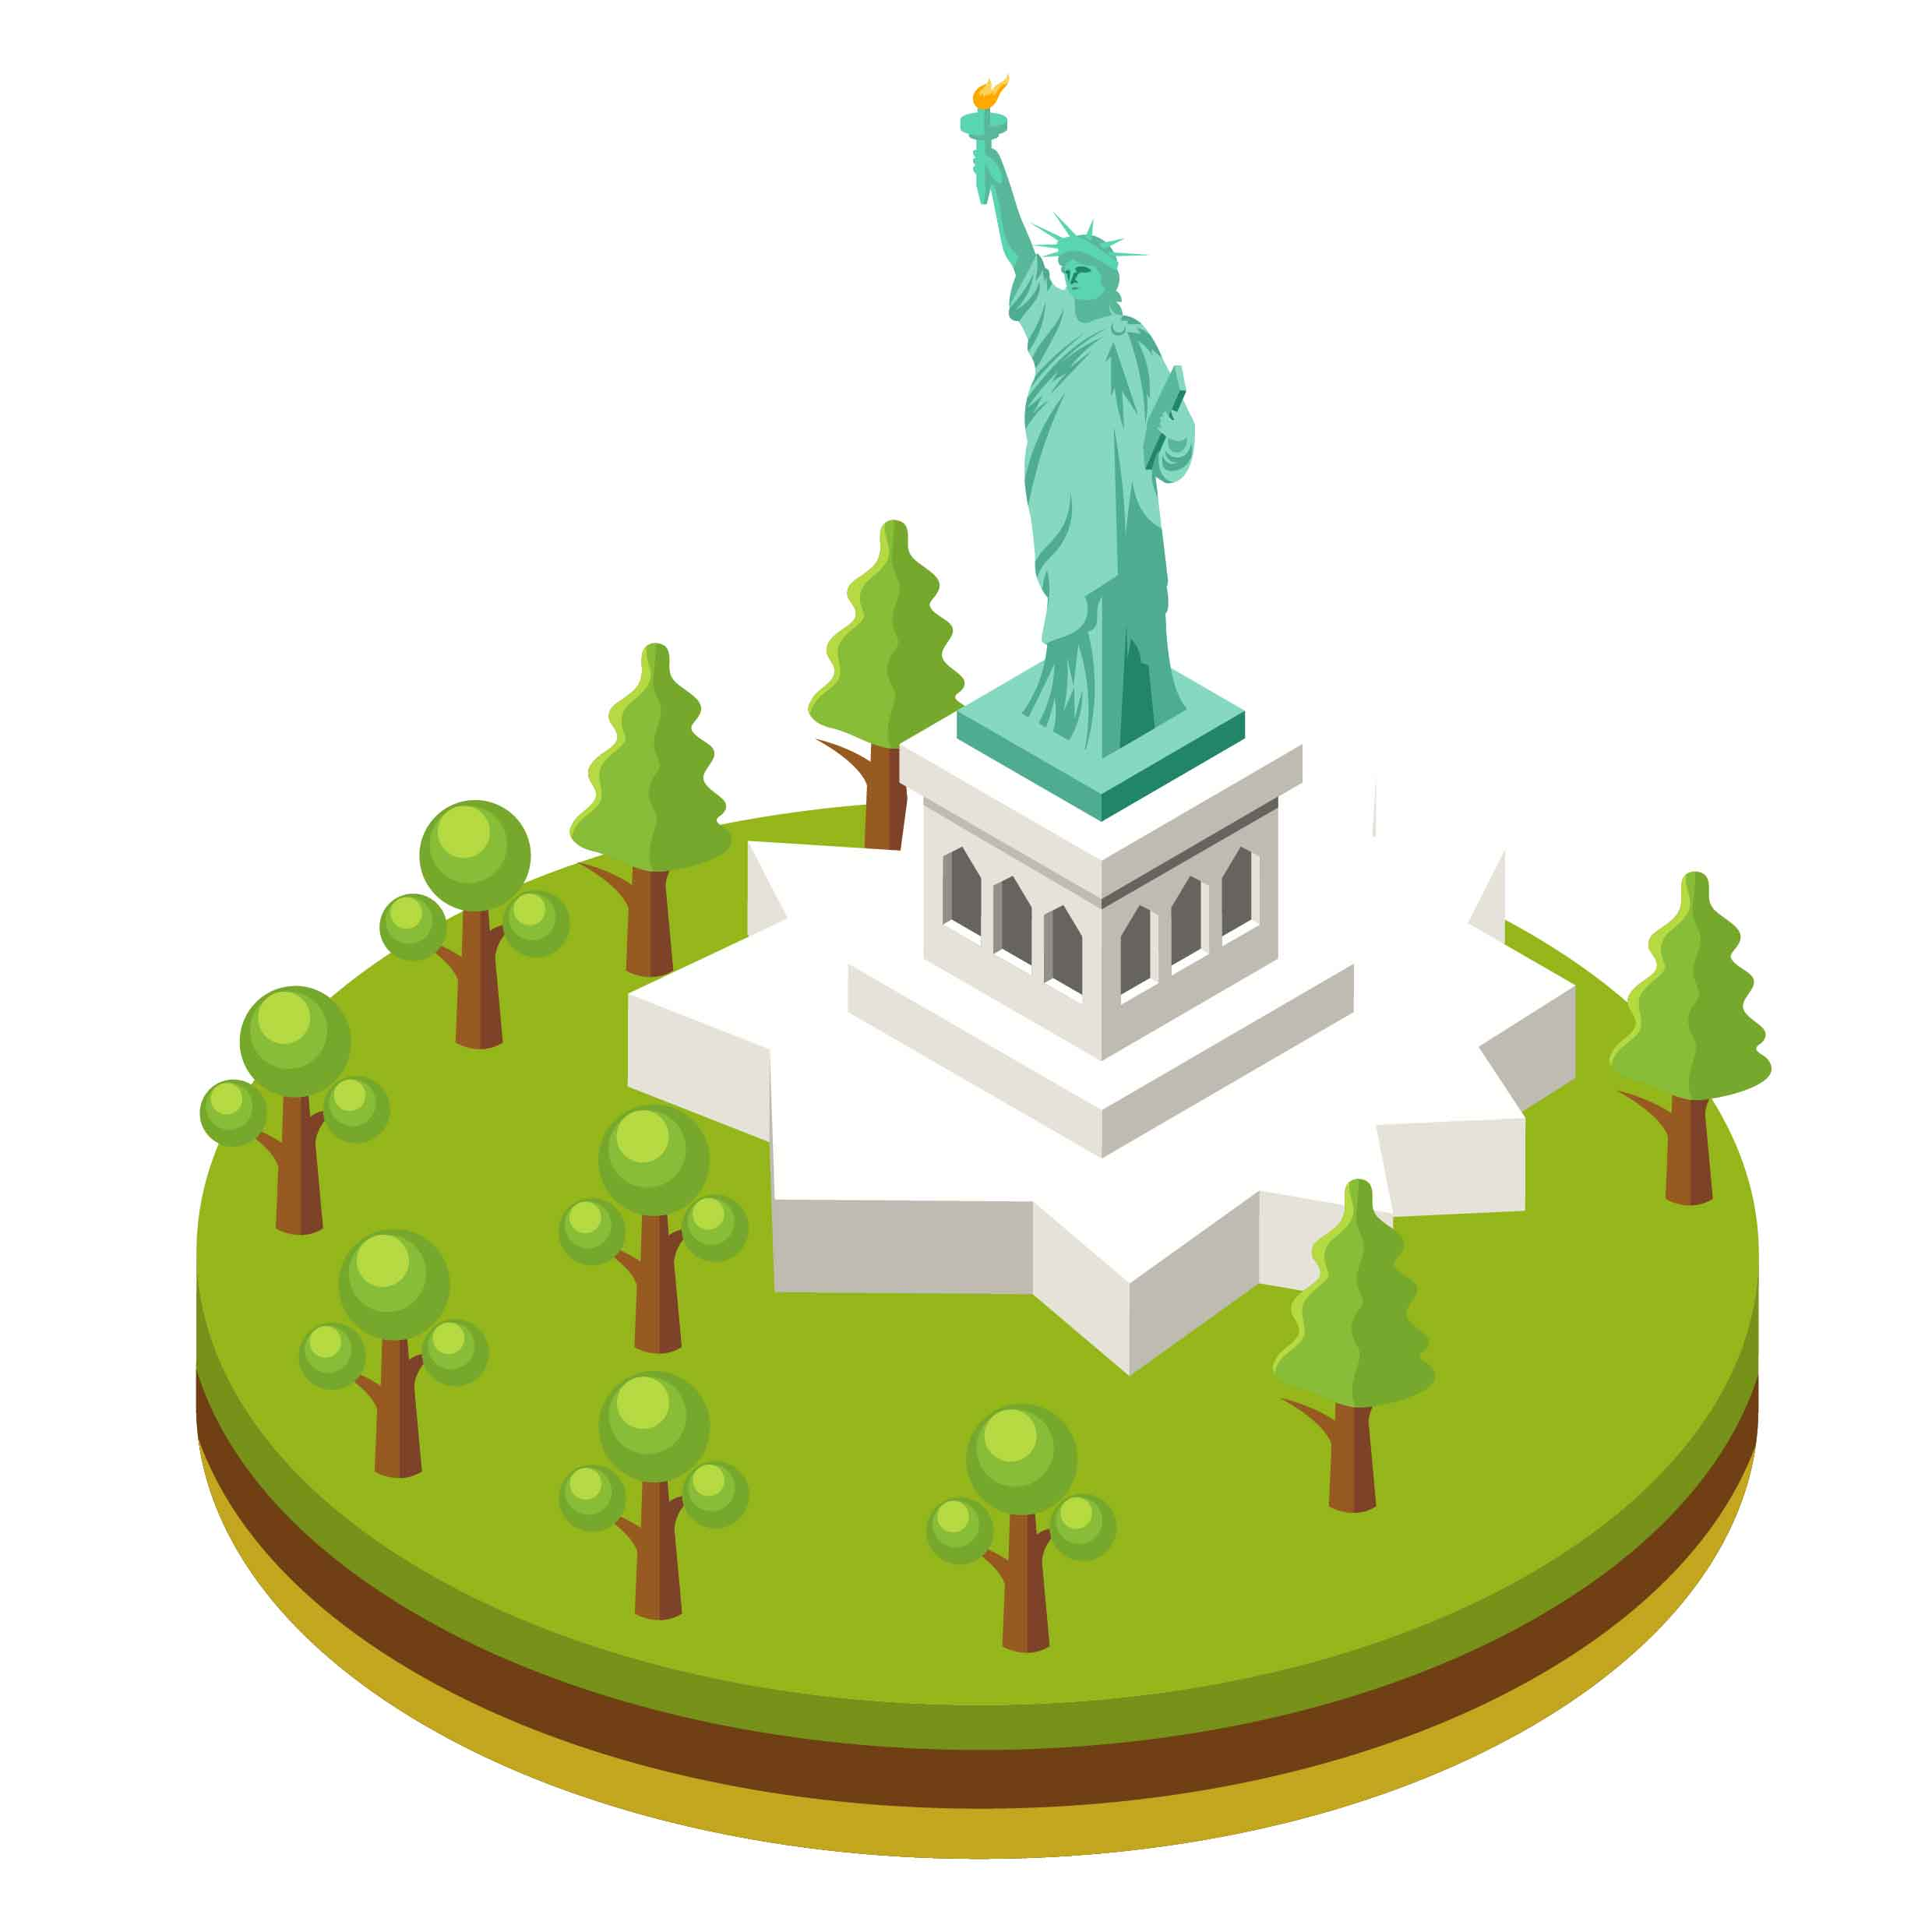 2480x2480 Isometric Liberty Statue In New York City